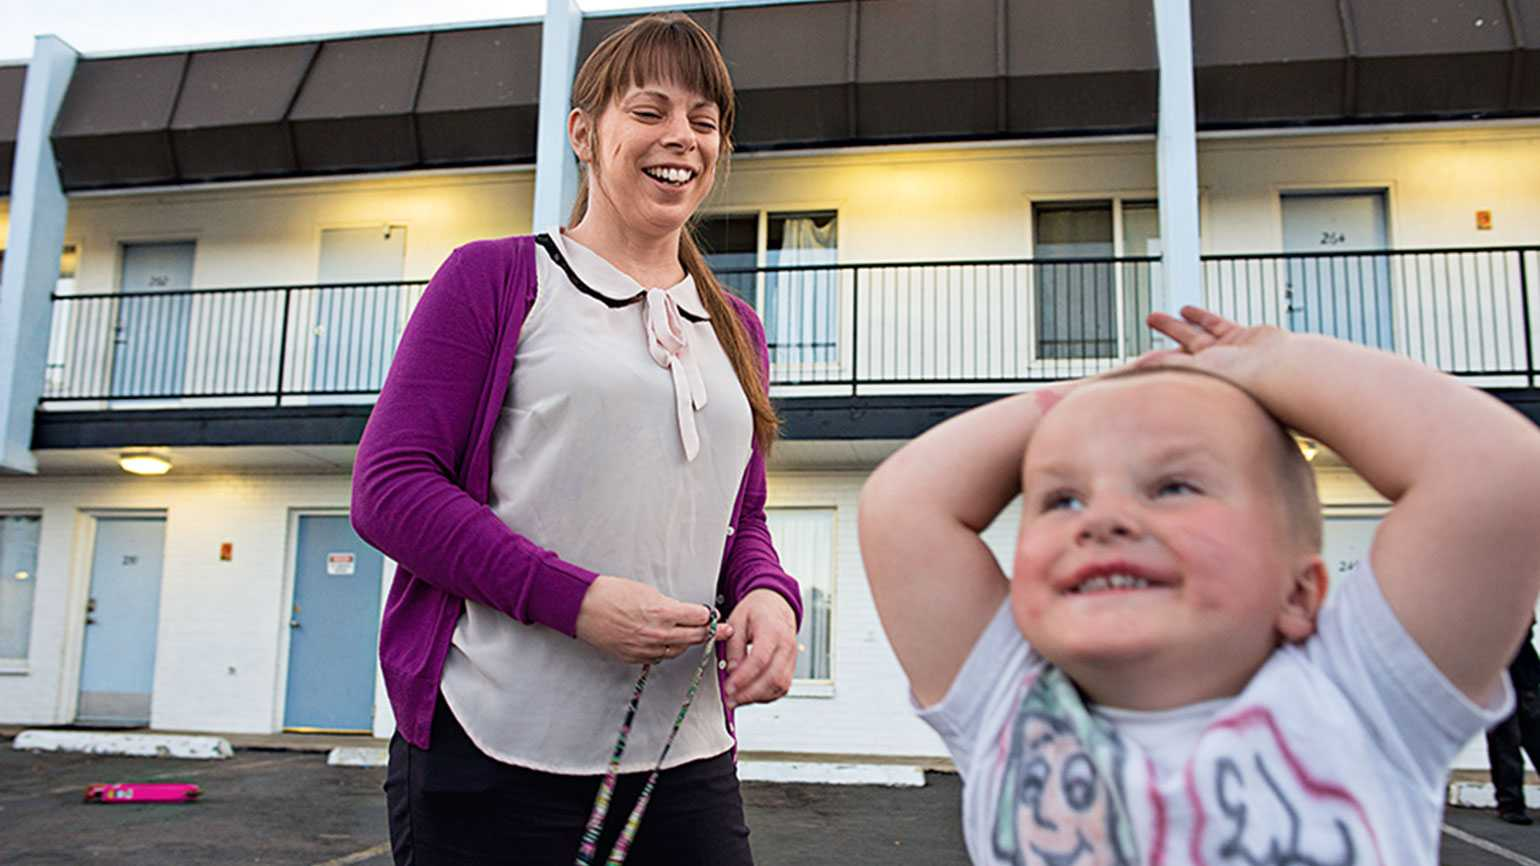 Marsha Carey, the interim project manager of Denver's Family Motel, with one of the children staying there